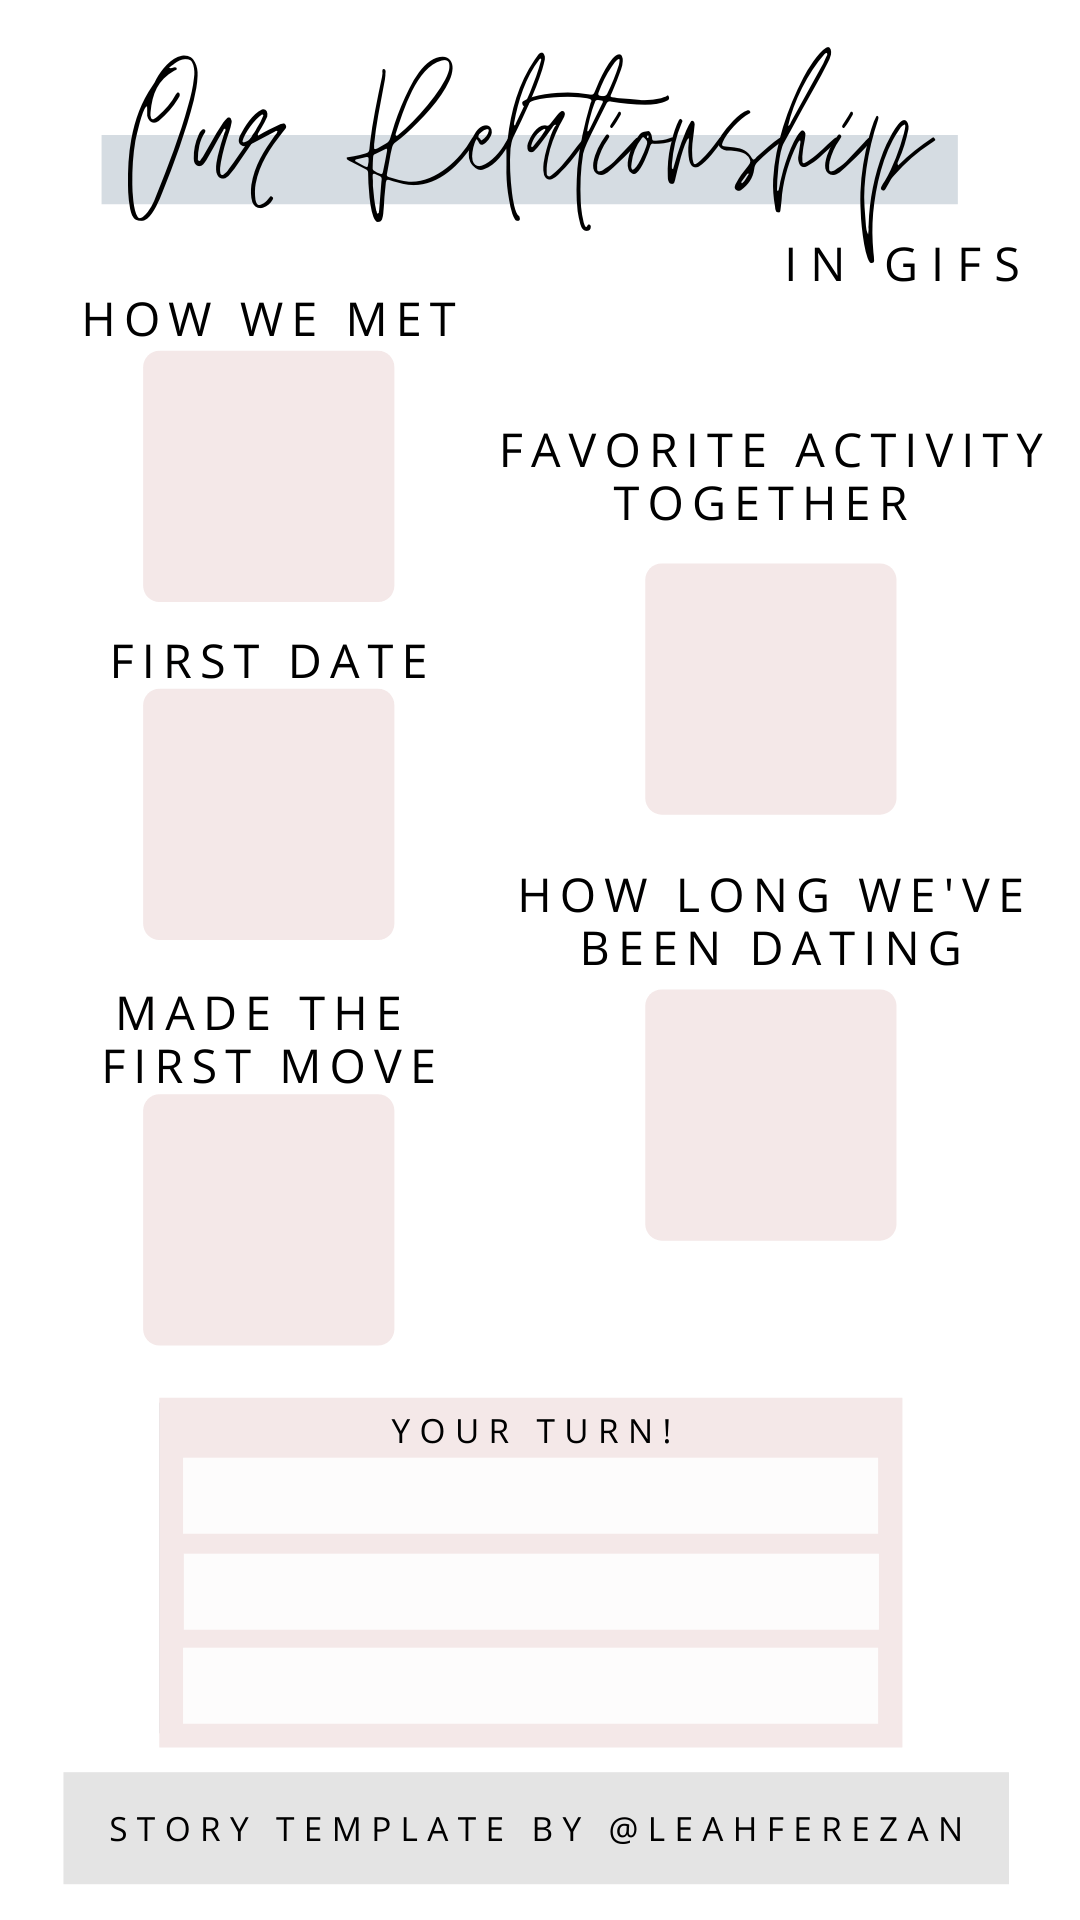 Our Relationship in GIFS Instagram Story Template